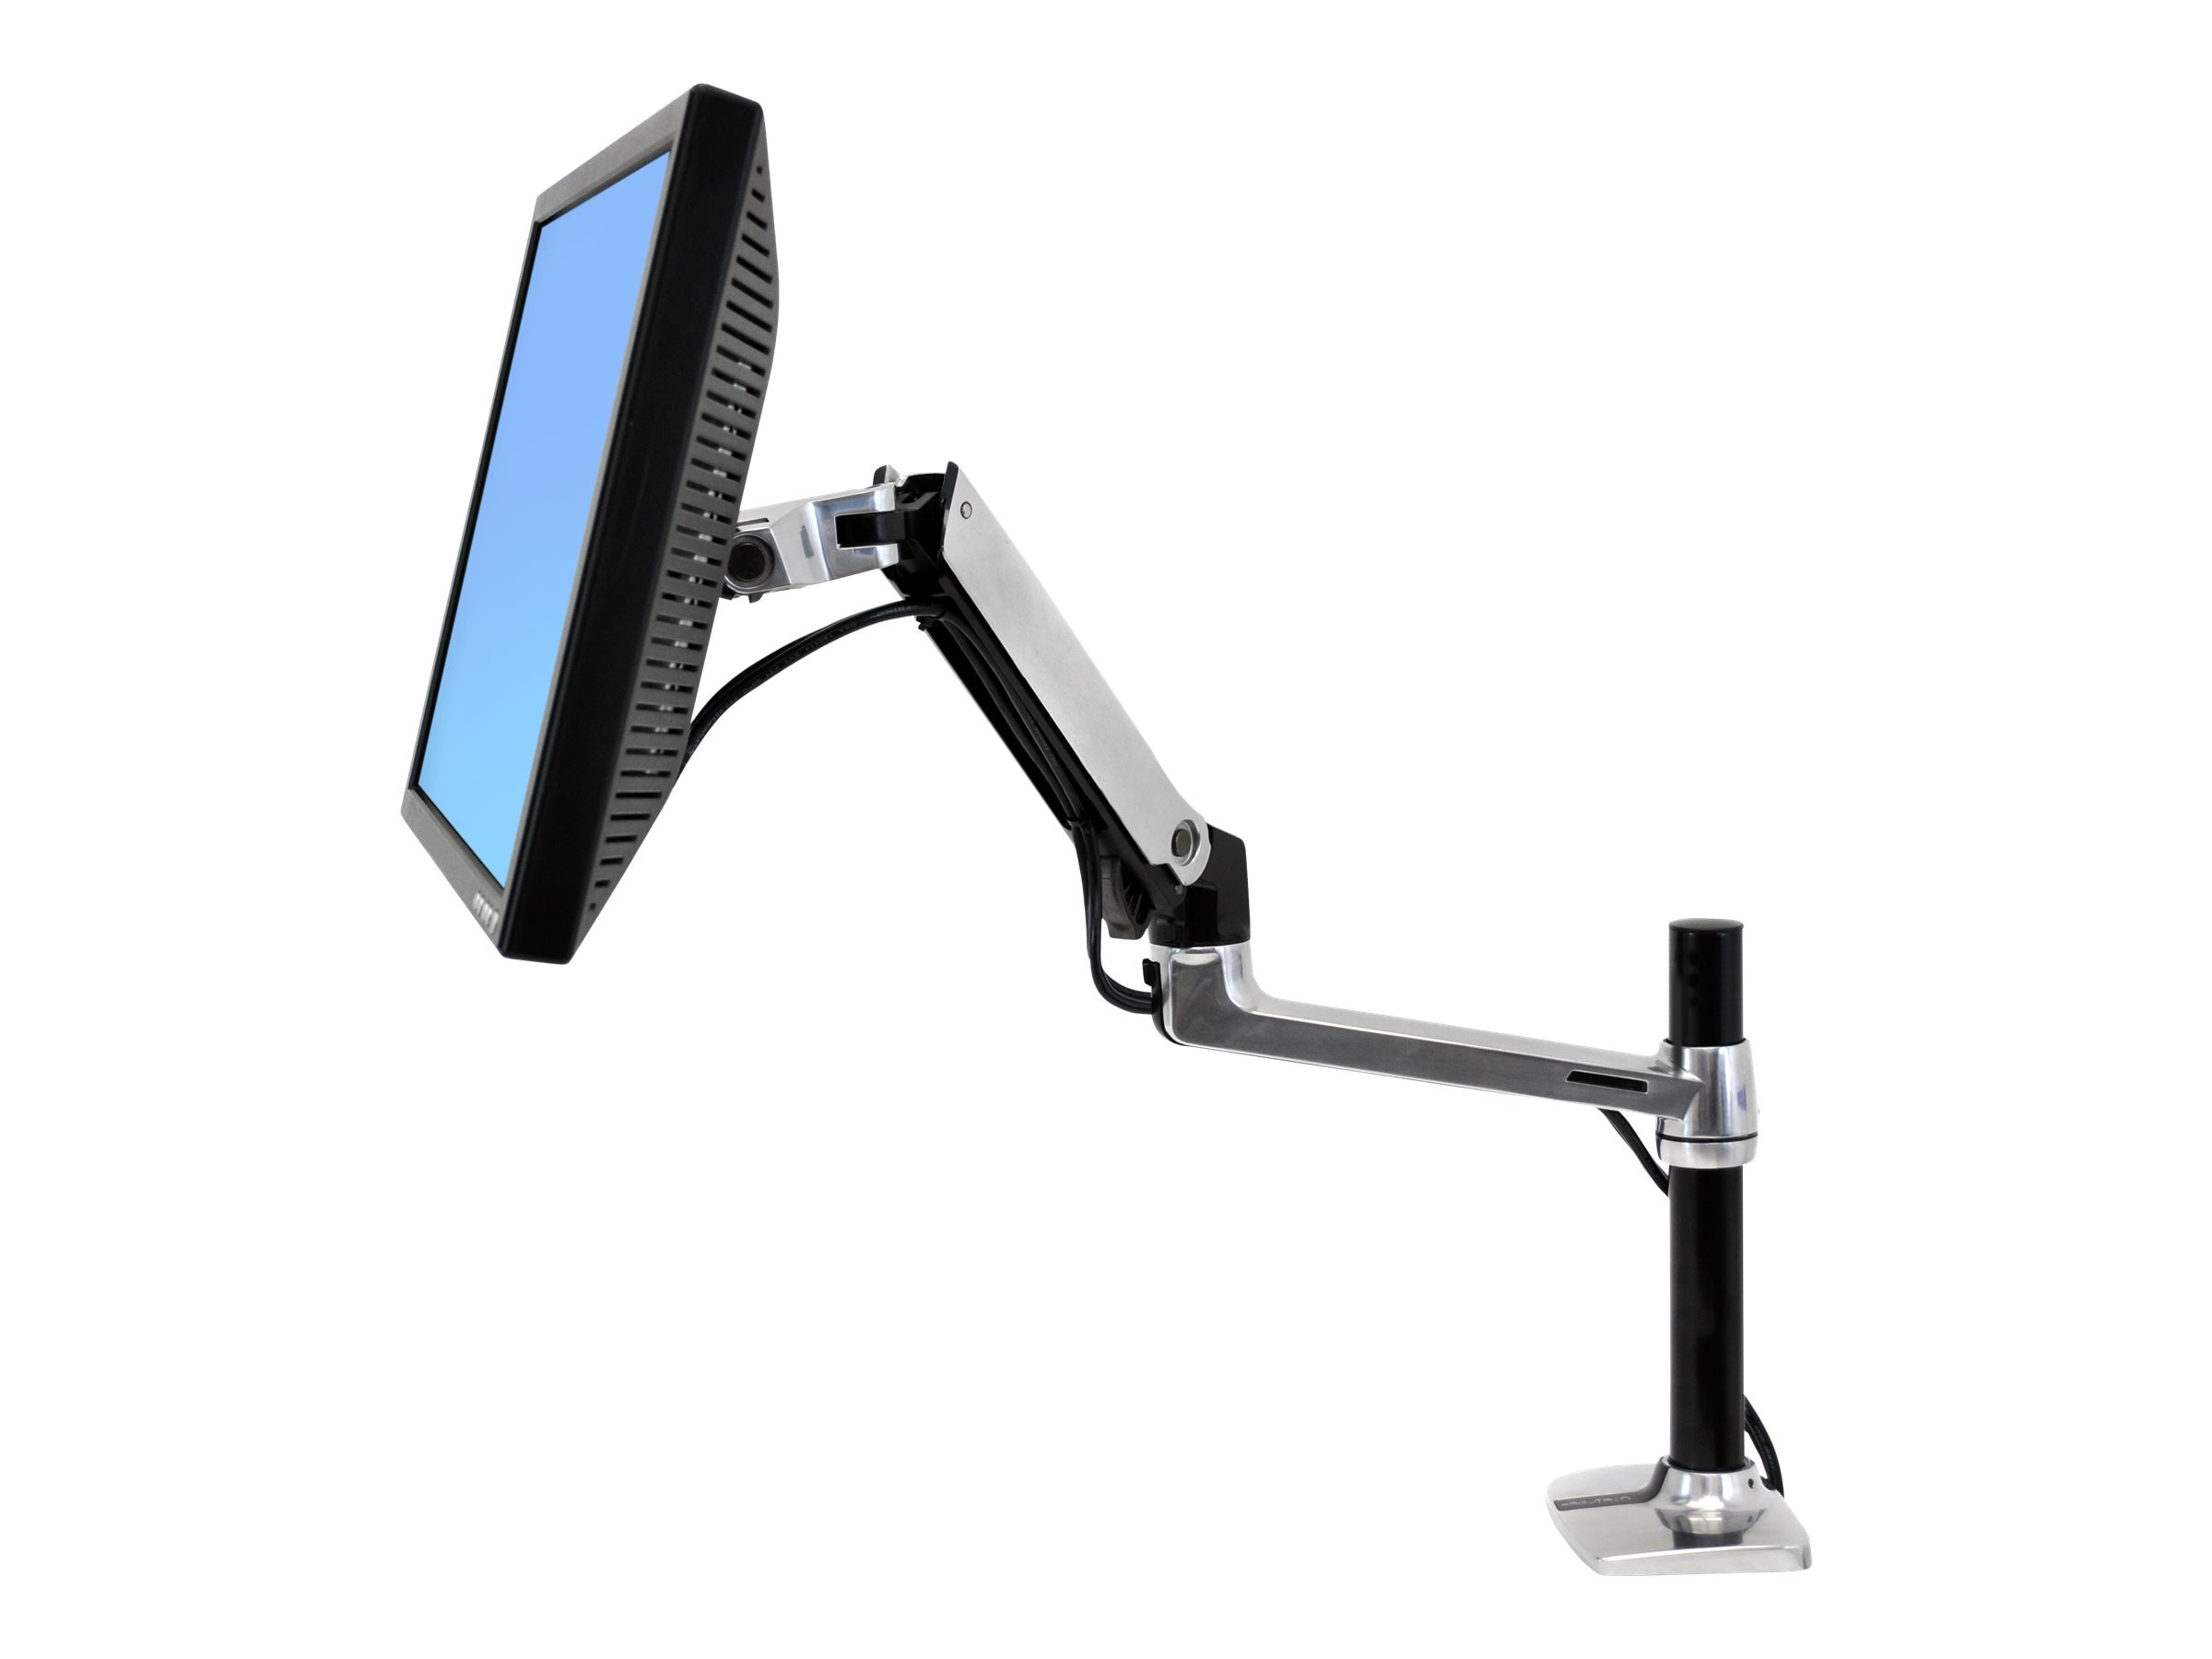 Ergotron LX Desk Mount LCD Arm with Tall Pole